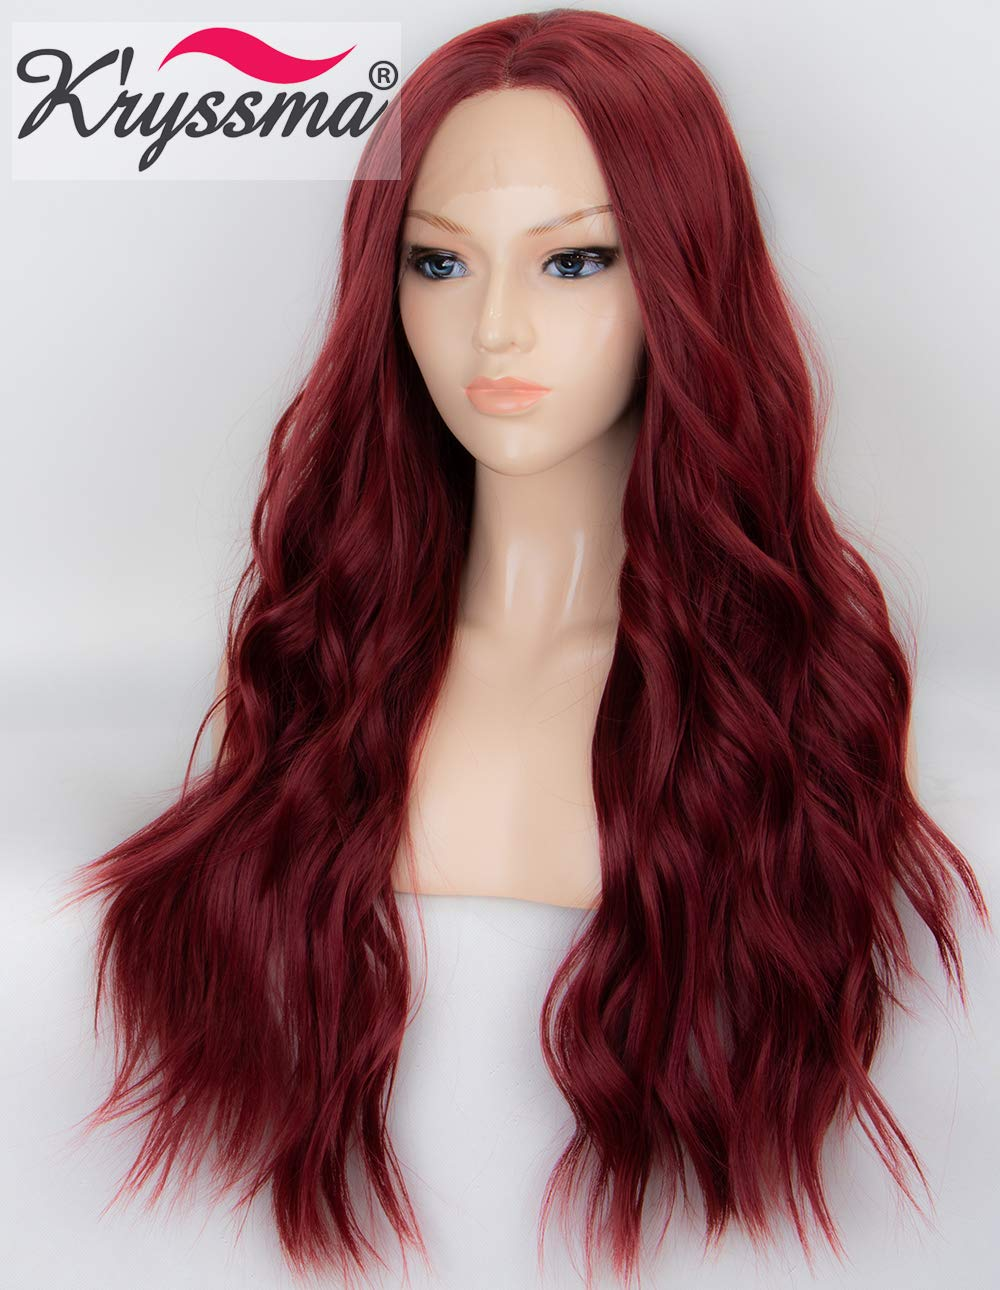 K'ryssma 22 inches Wine Red Lace Front Wigs Burgundy Synthetic Wig for Women Glueless Long Wavy Hair Wigs Heat Resistant Middle Parting by K'ryssma